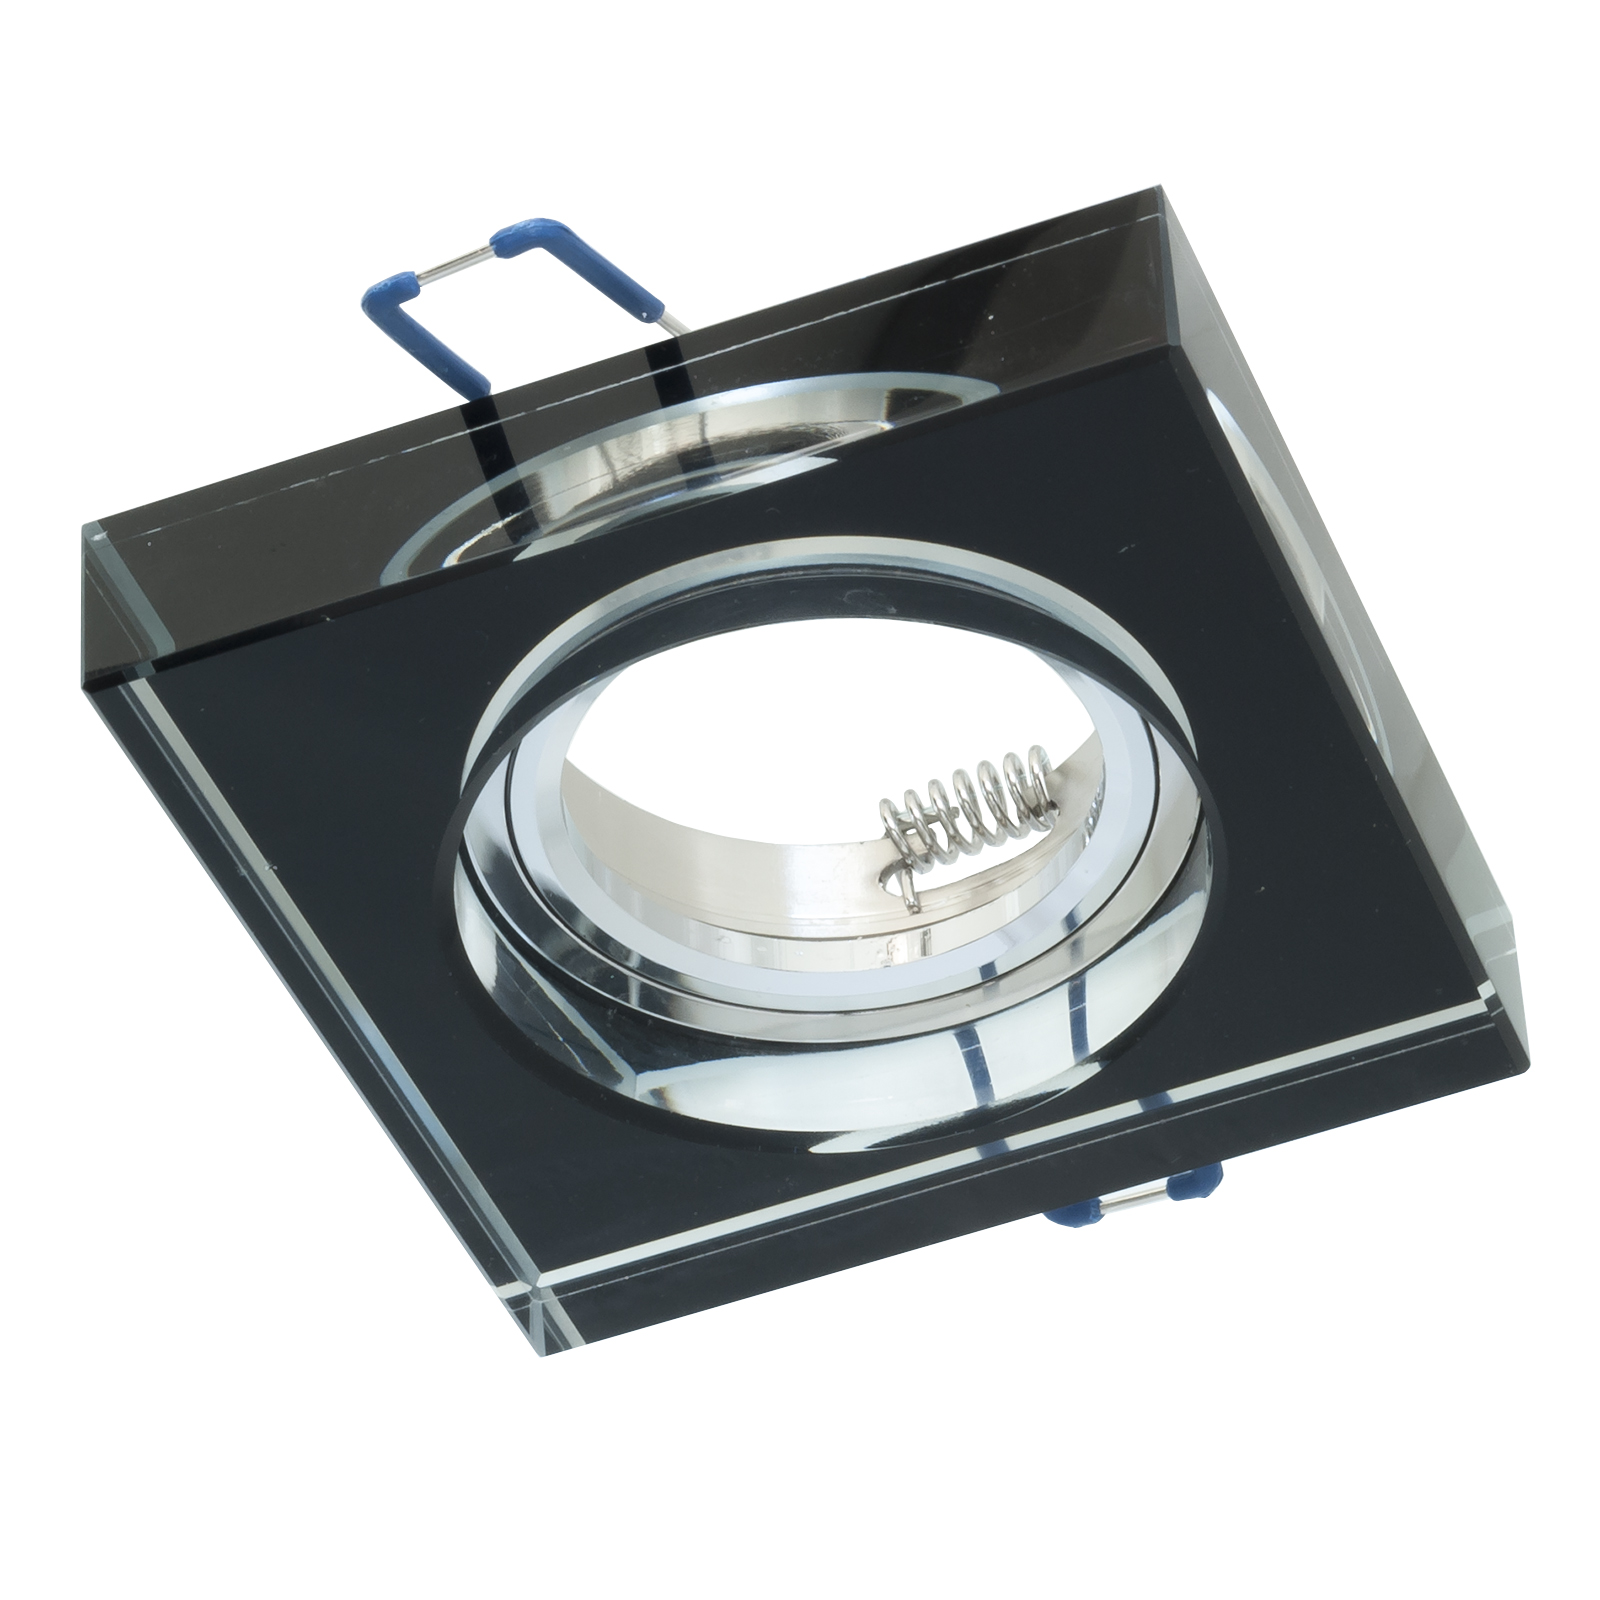 Portafaretto, recessed, 60mm black square crystal glass downlight GU10 GU5.3 MR16